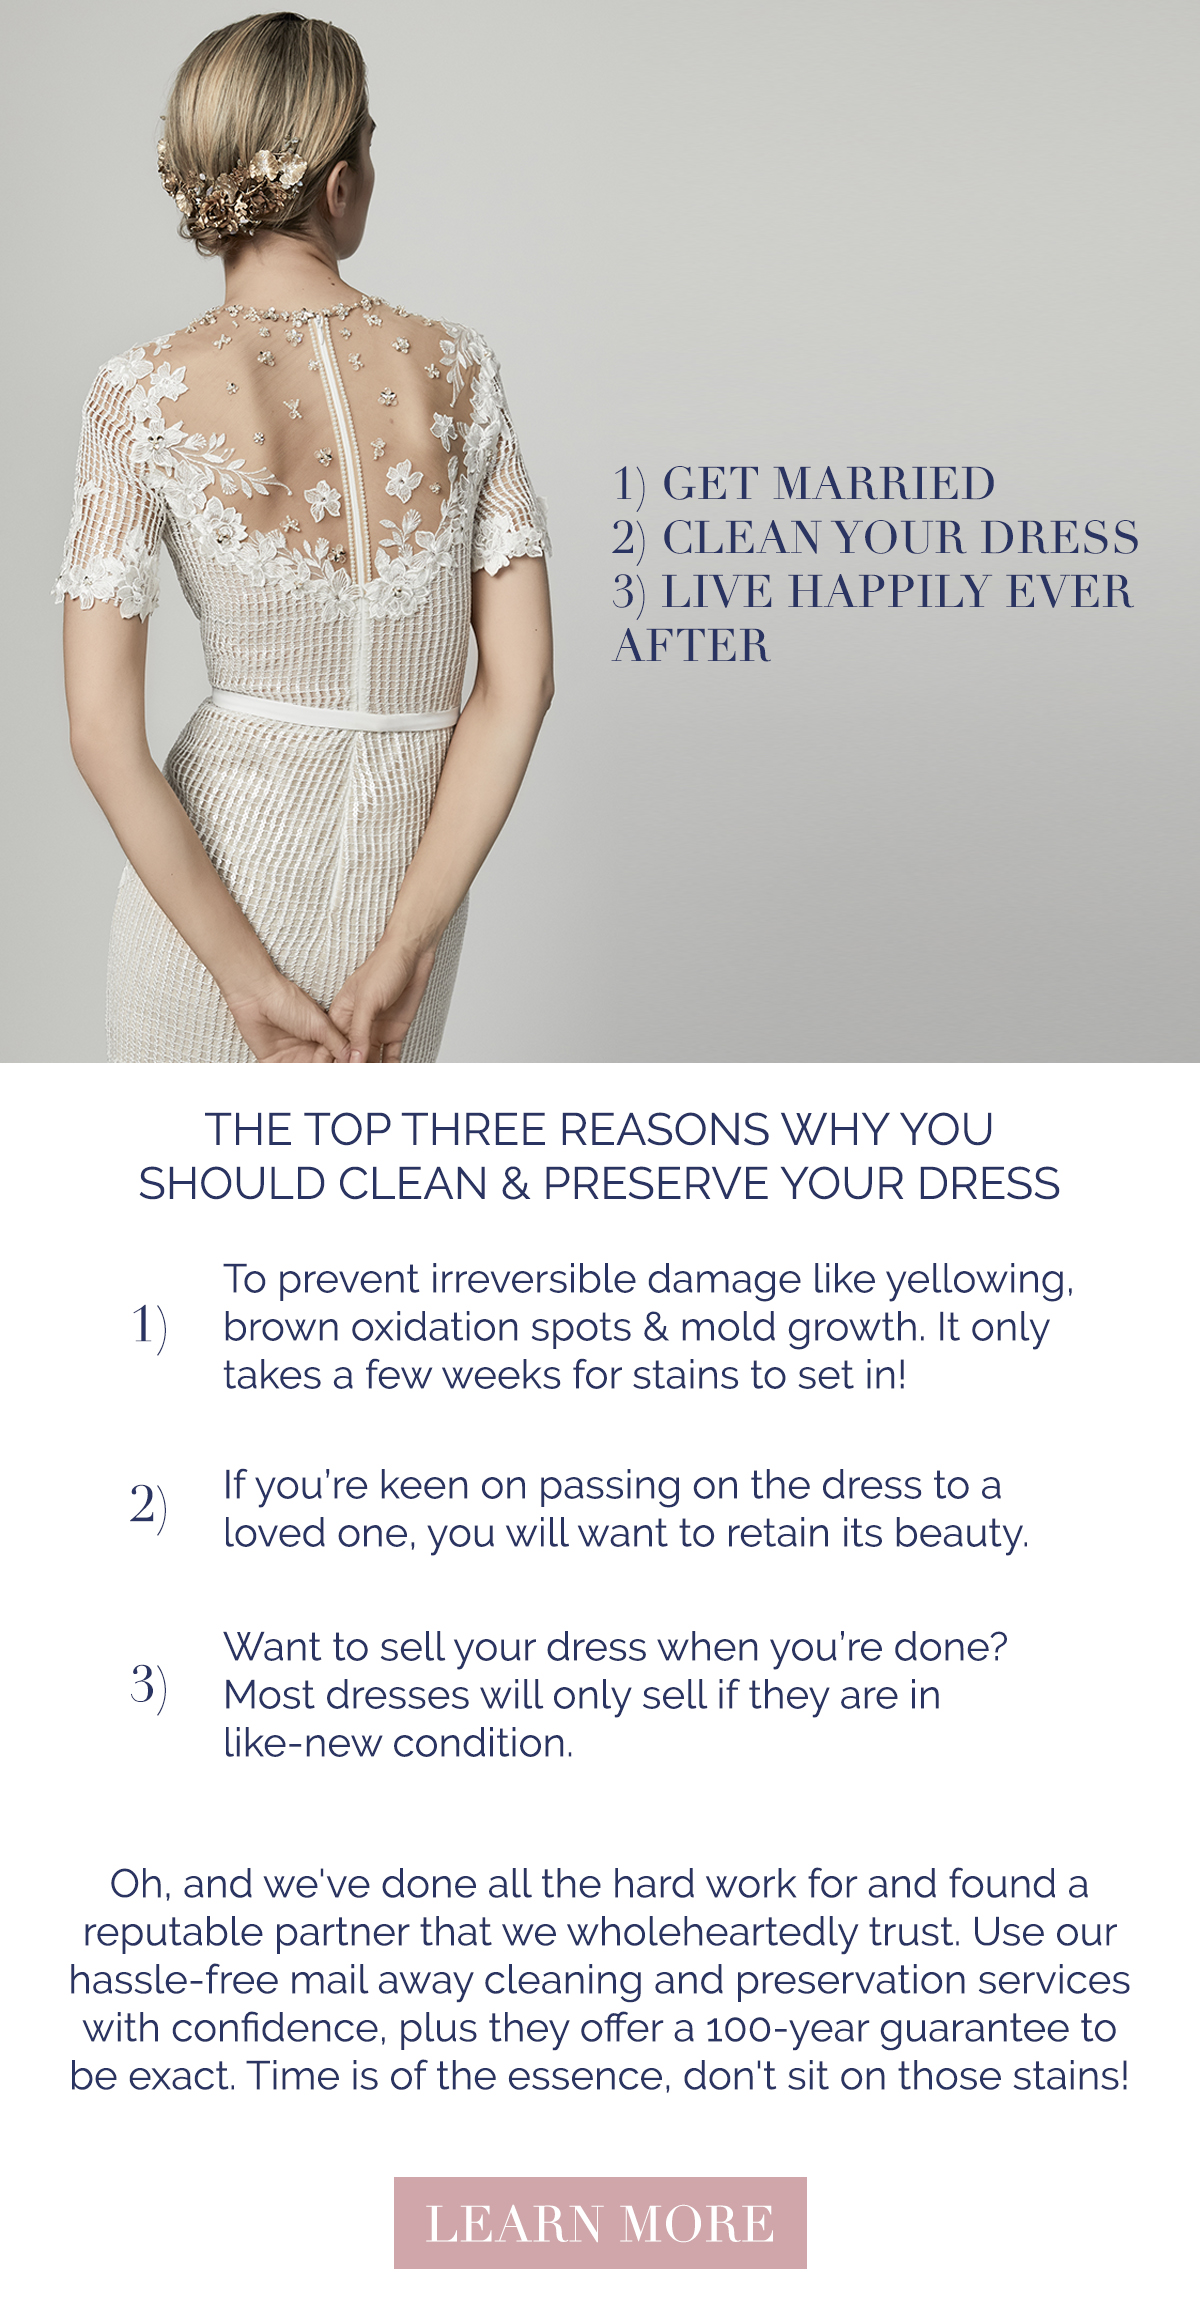 Clean Your Dress Email (1).jpg